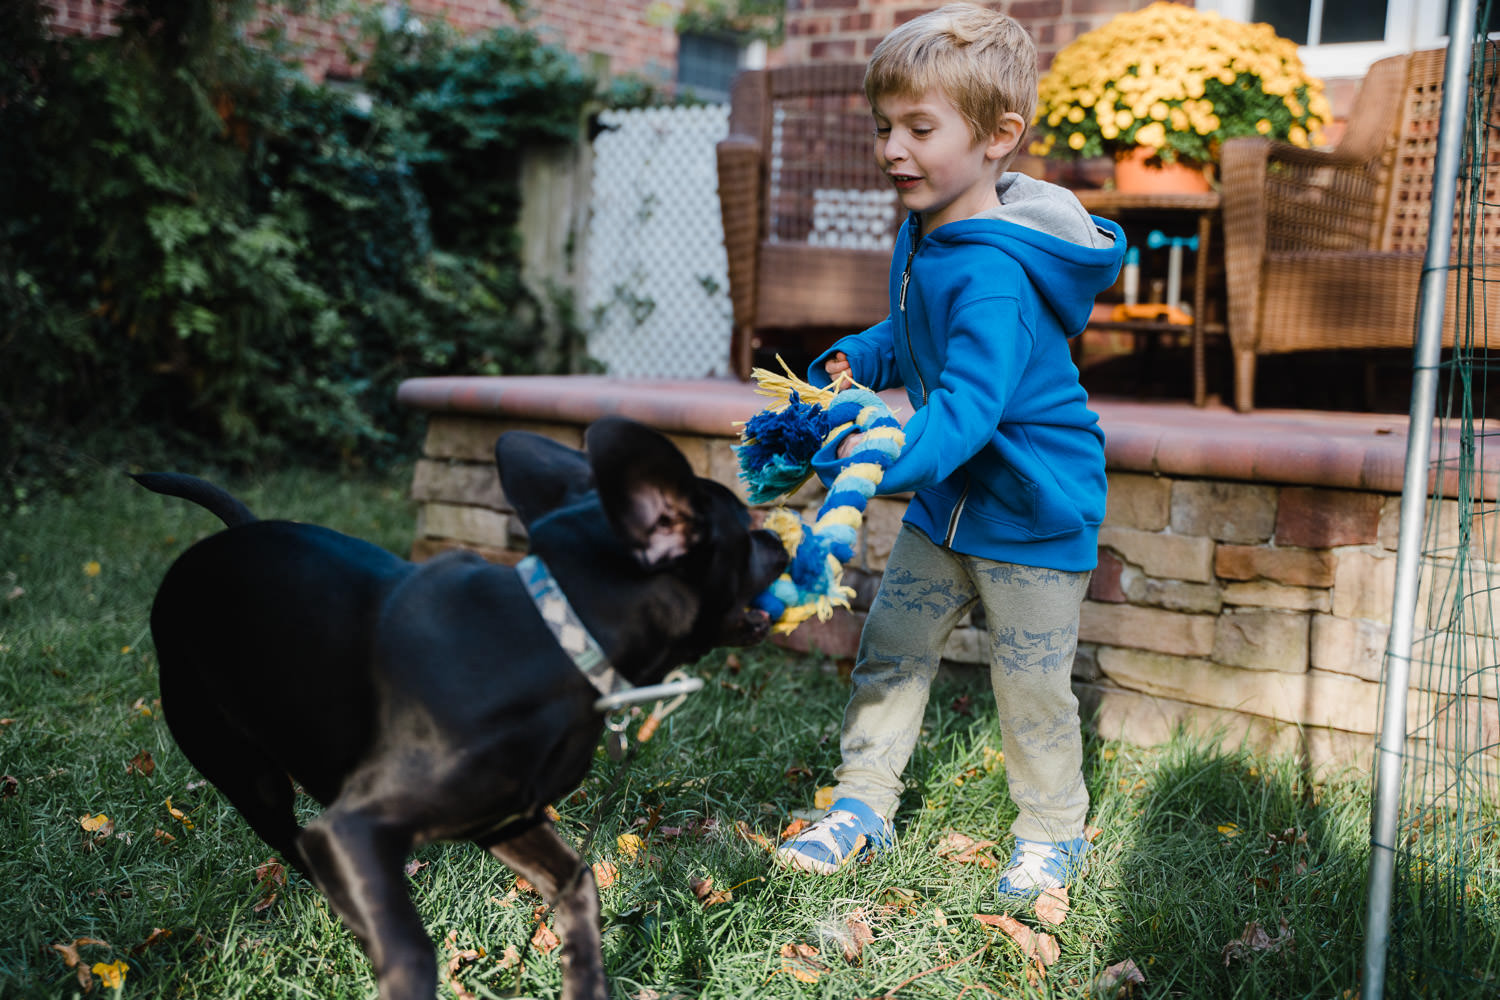 A little boy plays with his dog.